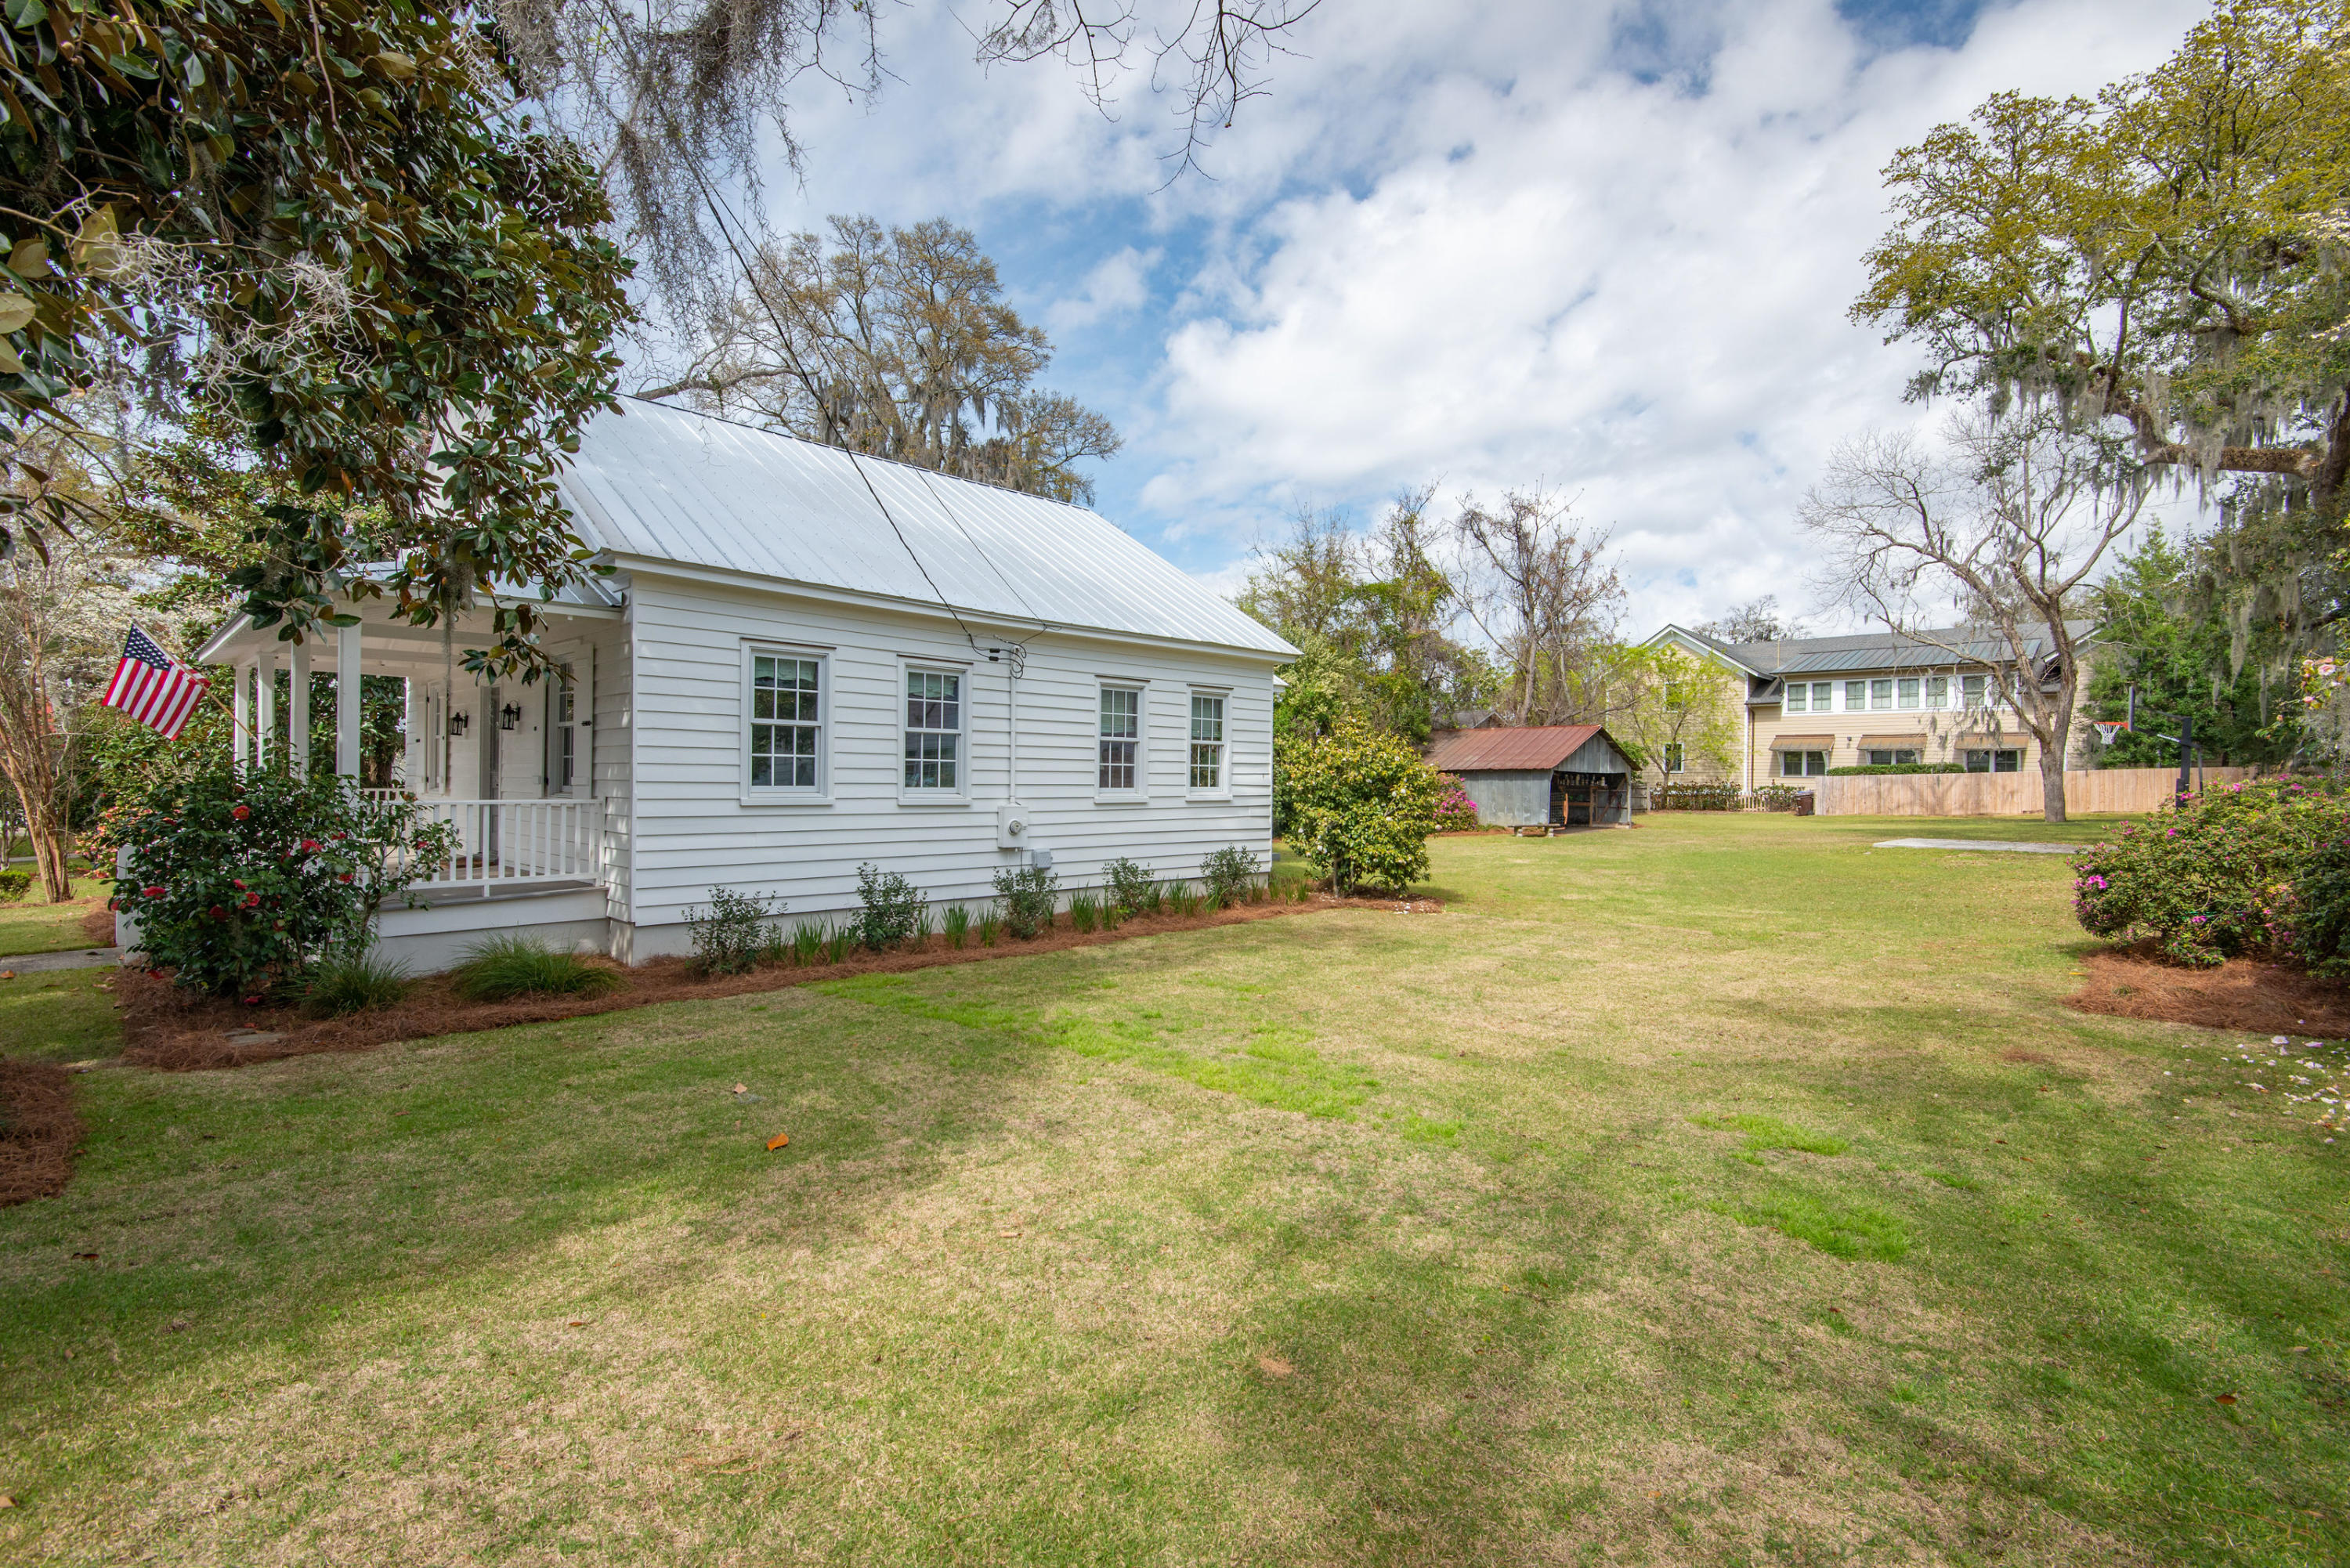 Old Village Homes For Sale - 110 Bennett, Mount Pleasant, SC - 23